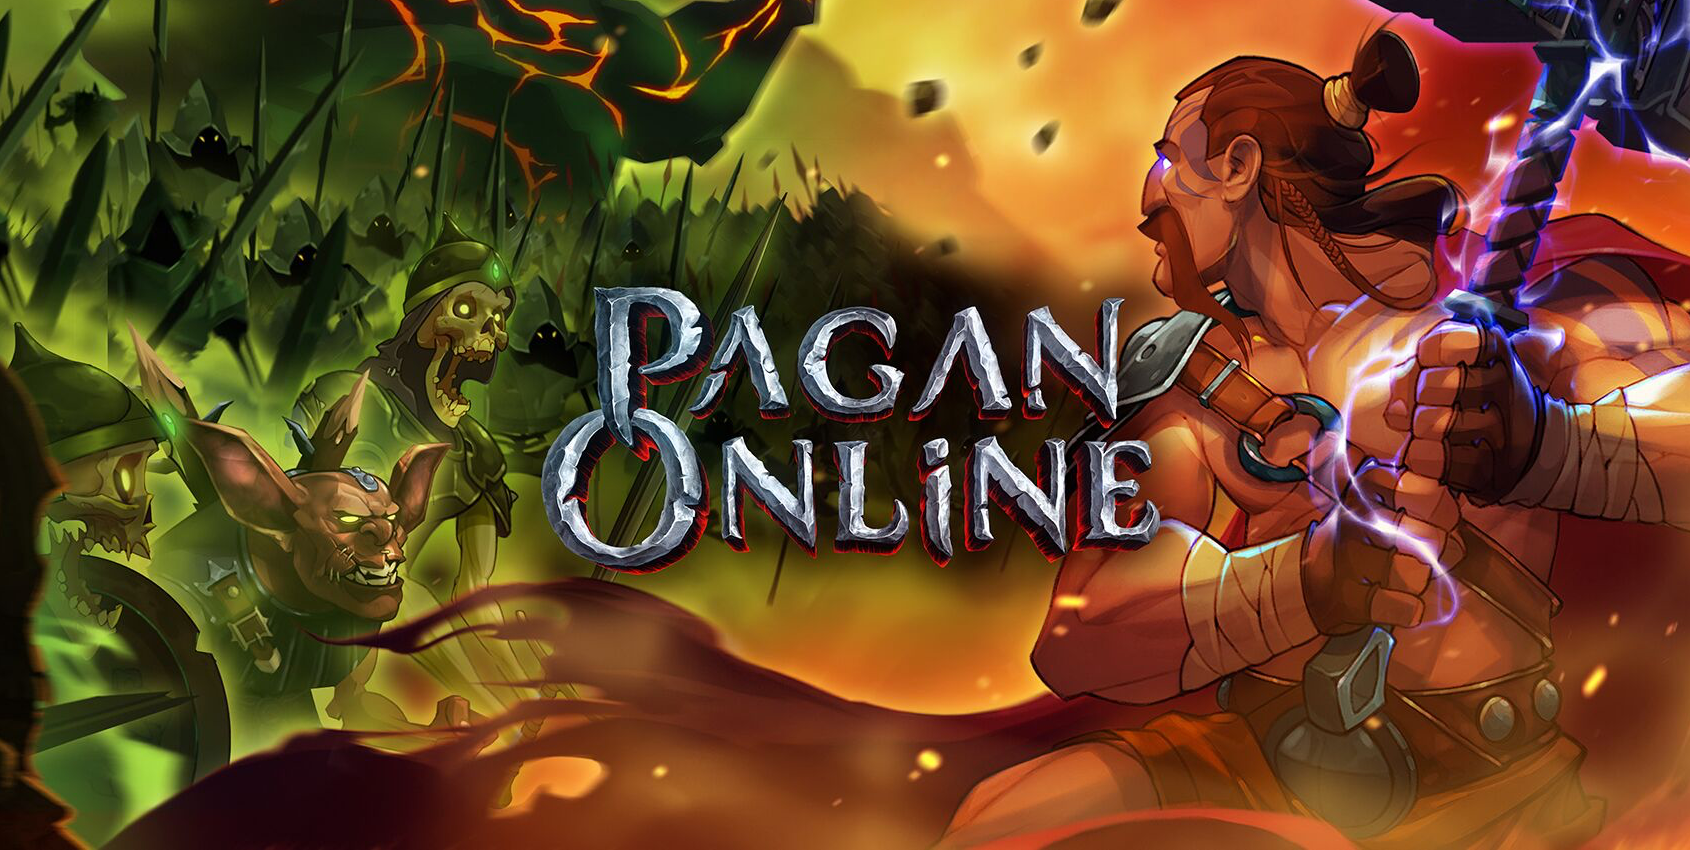 Hack 'n slash action RPG Pagan Online recibe un avance